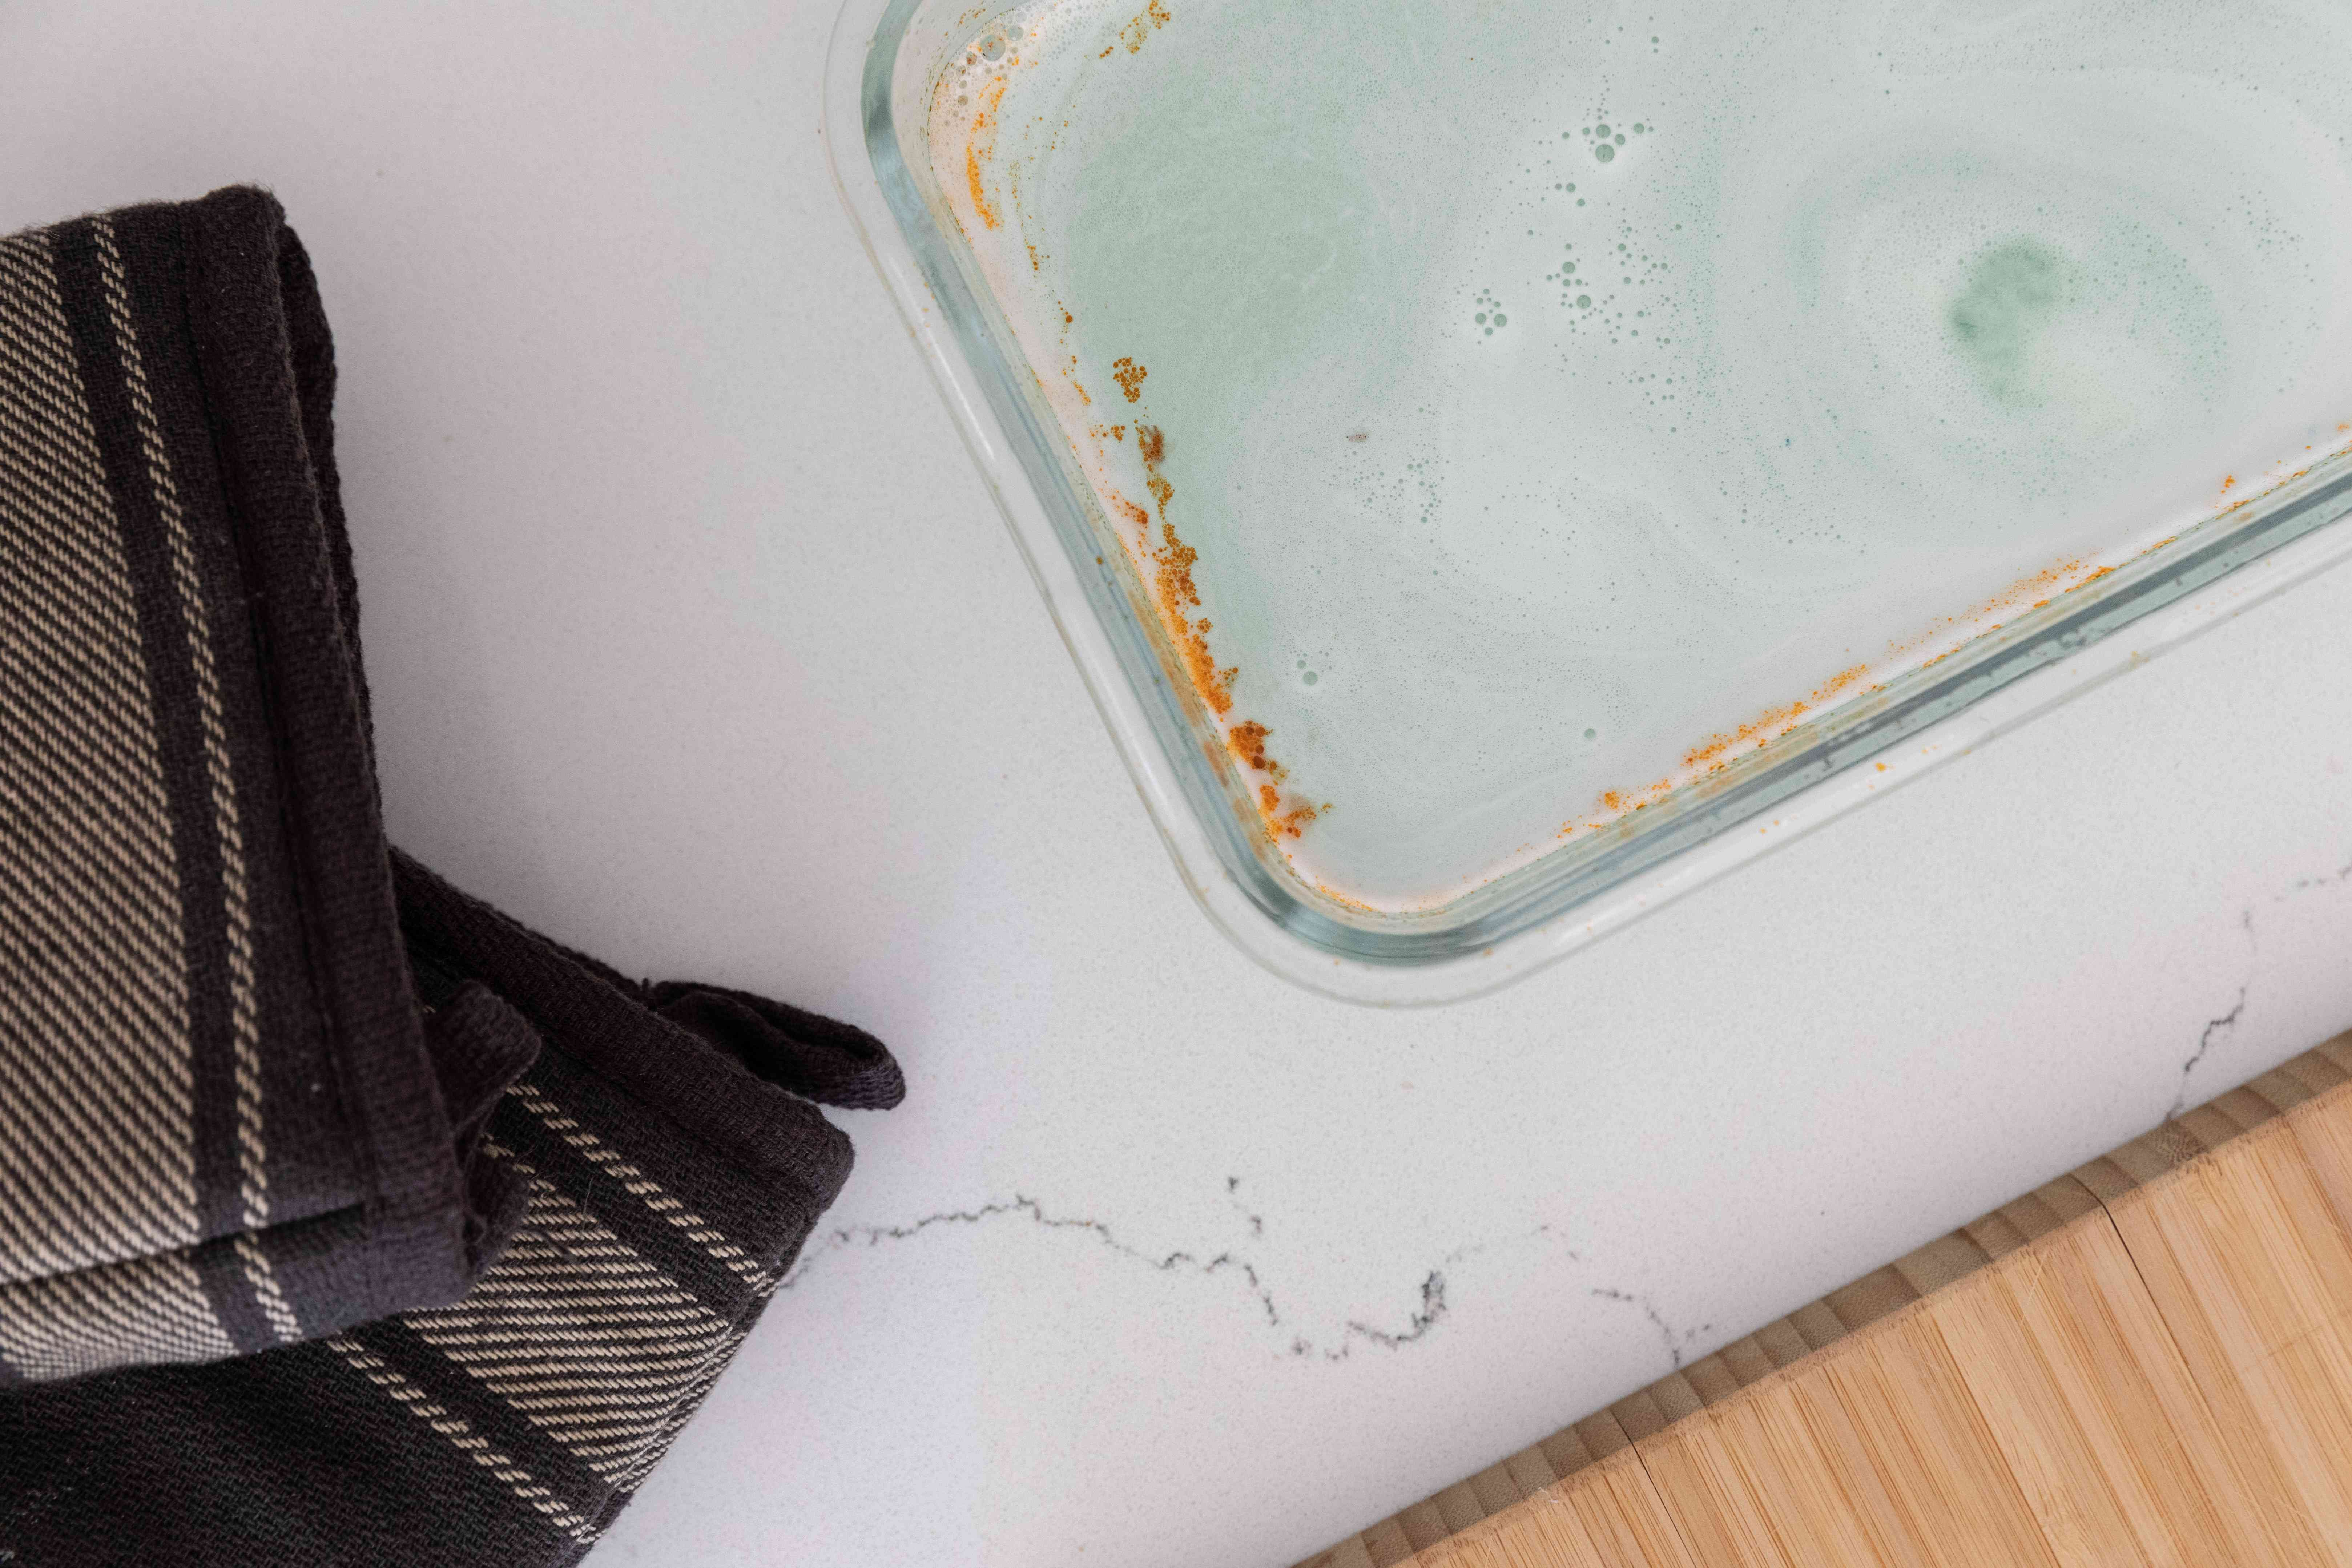 using denture tablets to clean glass bakeware